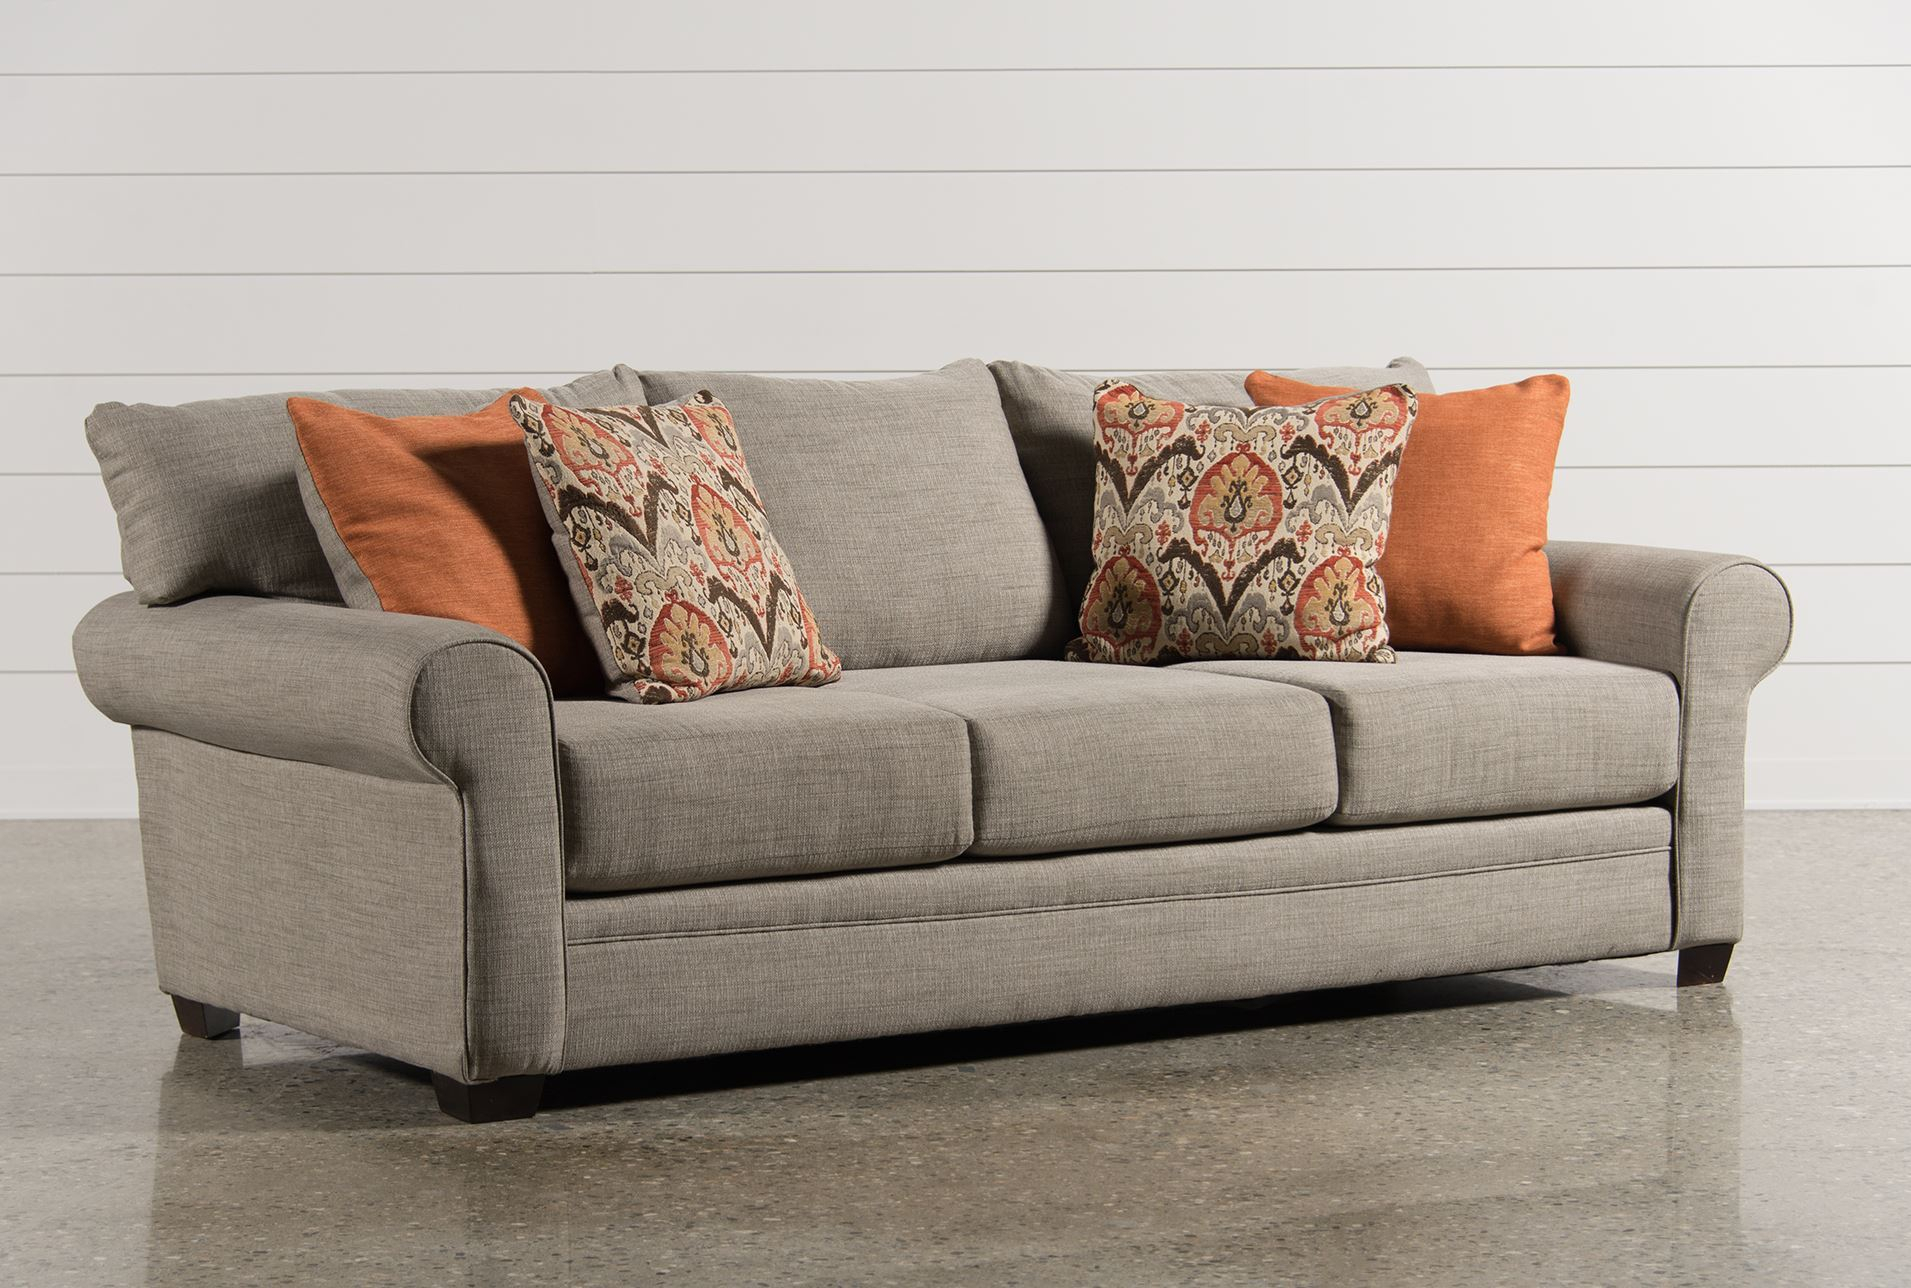 Colour Slipcovers Pillows Covers Couch Placement Glamour Schemes Intended For Aquarius Dark Grey Sofa Chairs (View 7 of 25)